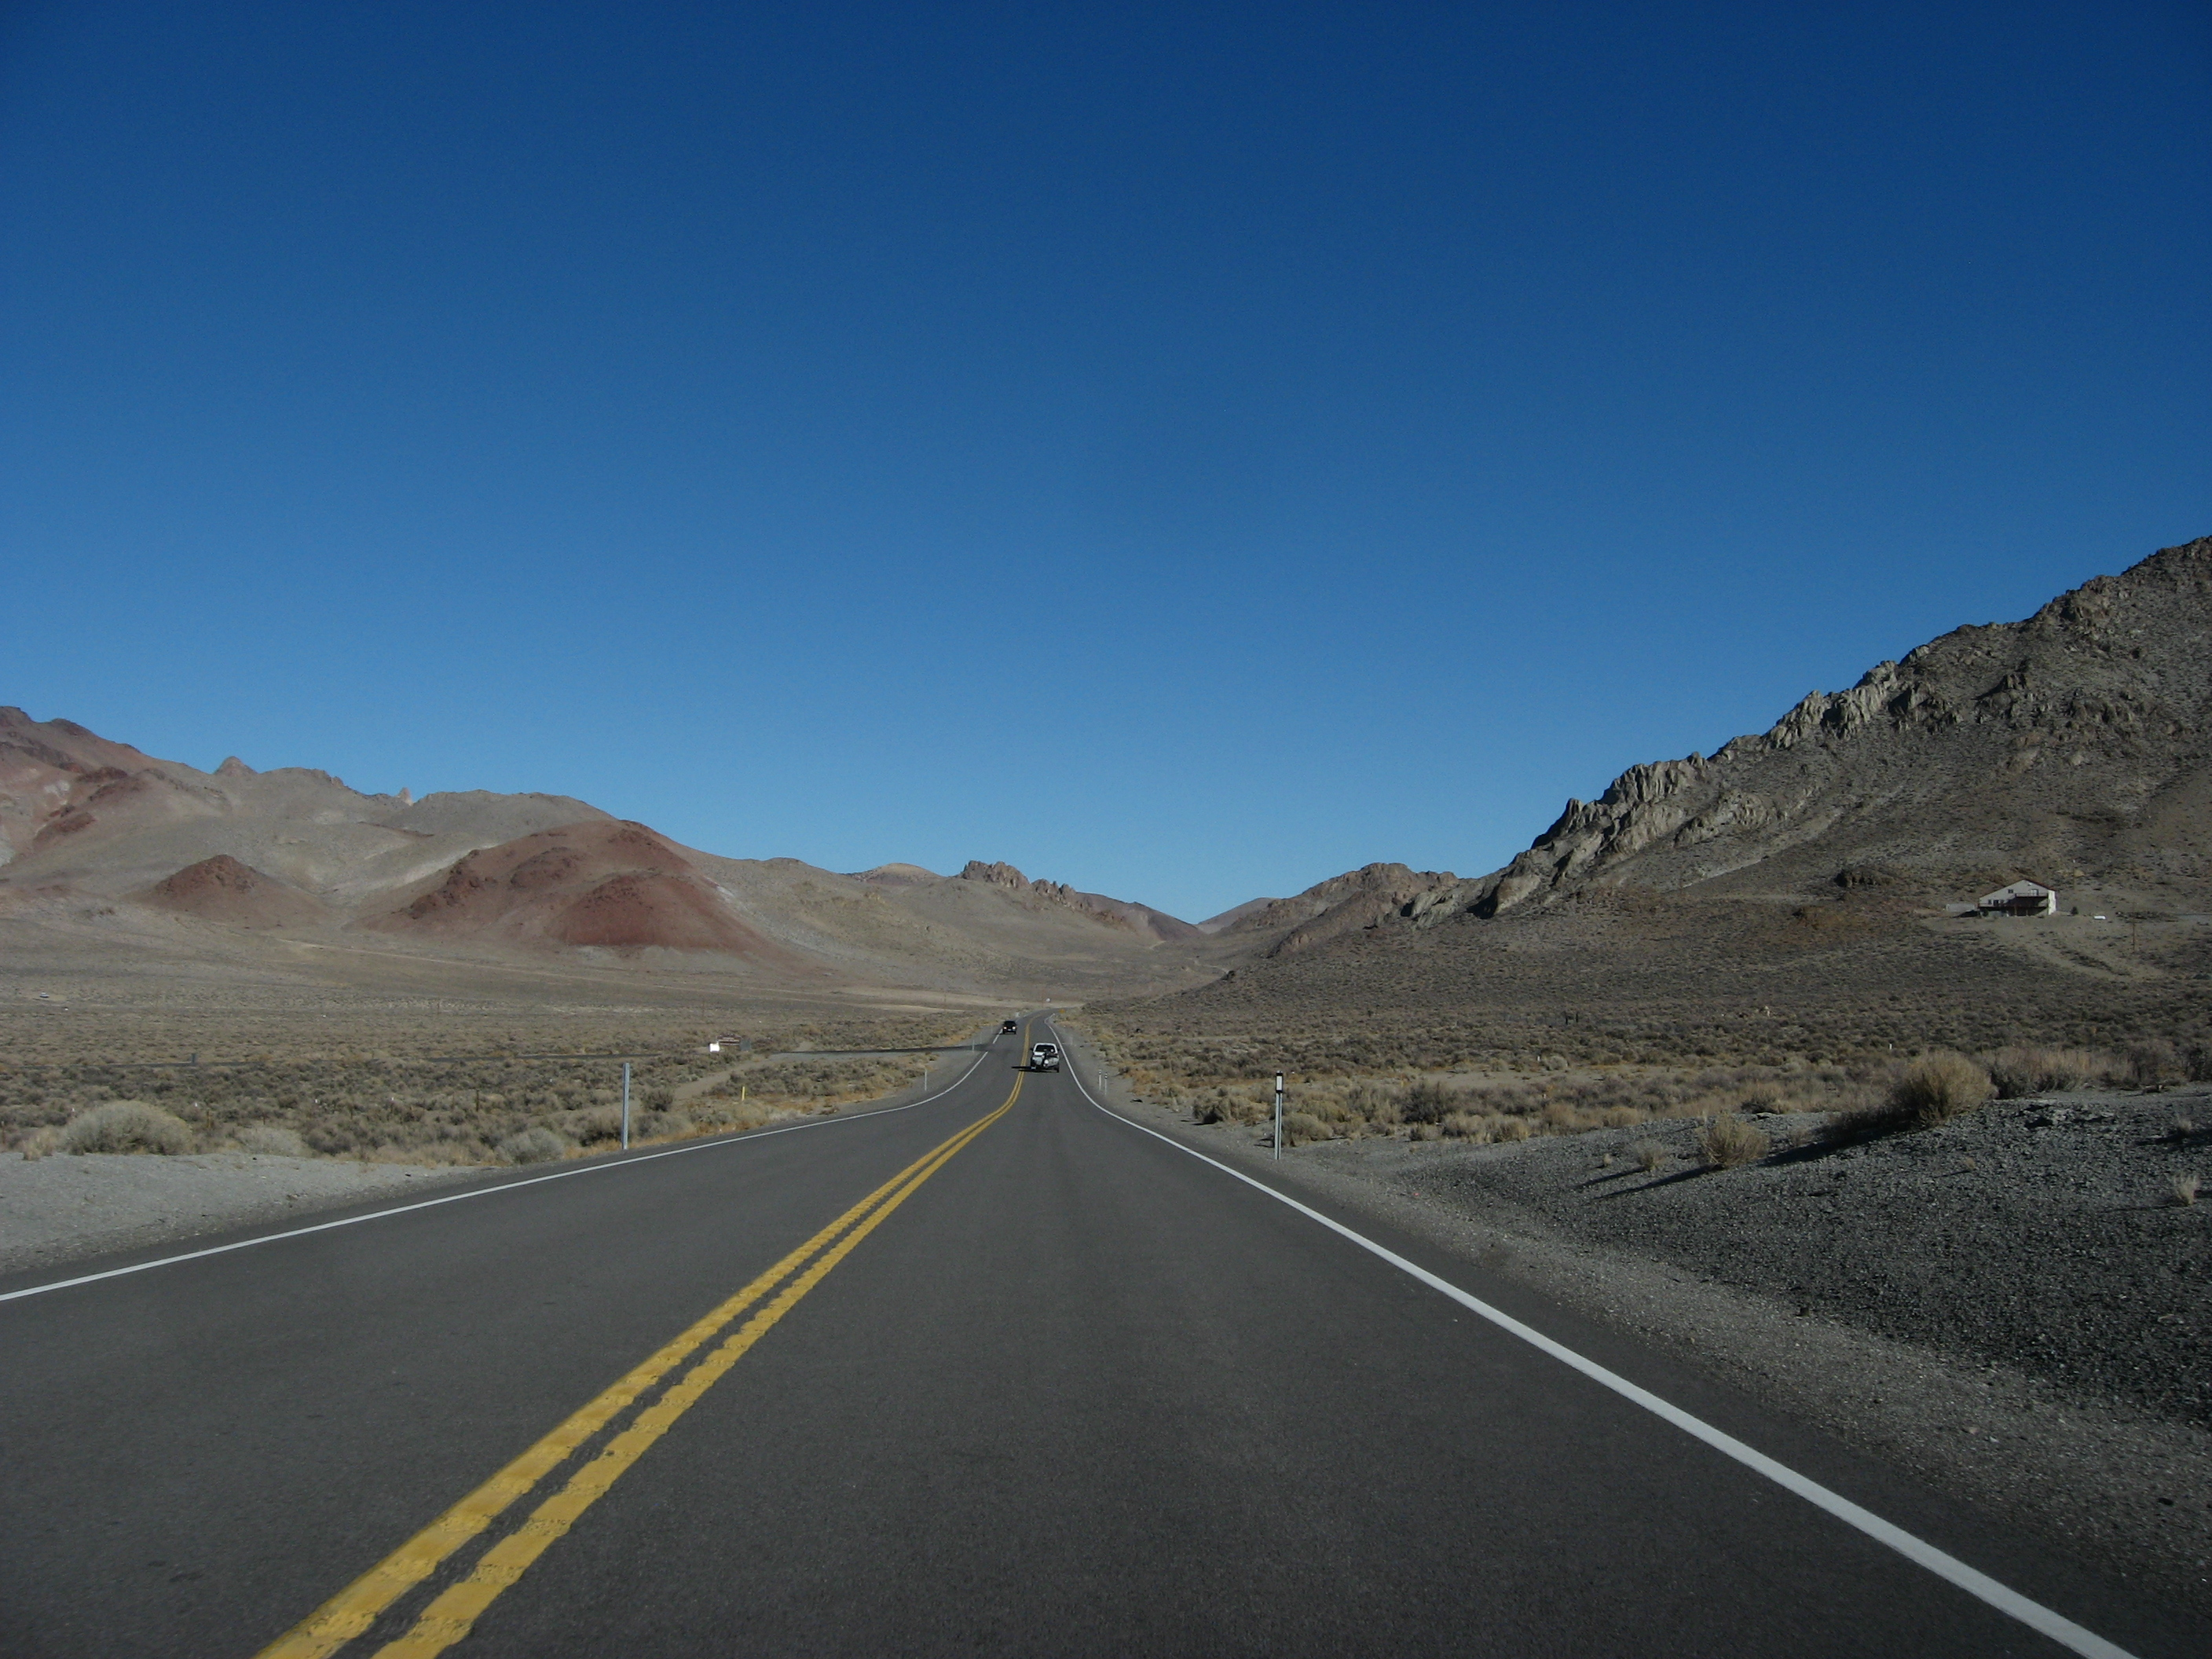 City Line Avenue >> File:S.R. 445 Between Sparks, Nevada and Pyramid Lake ...